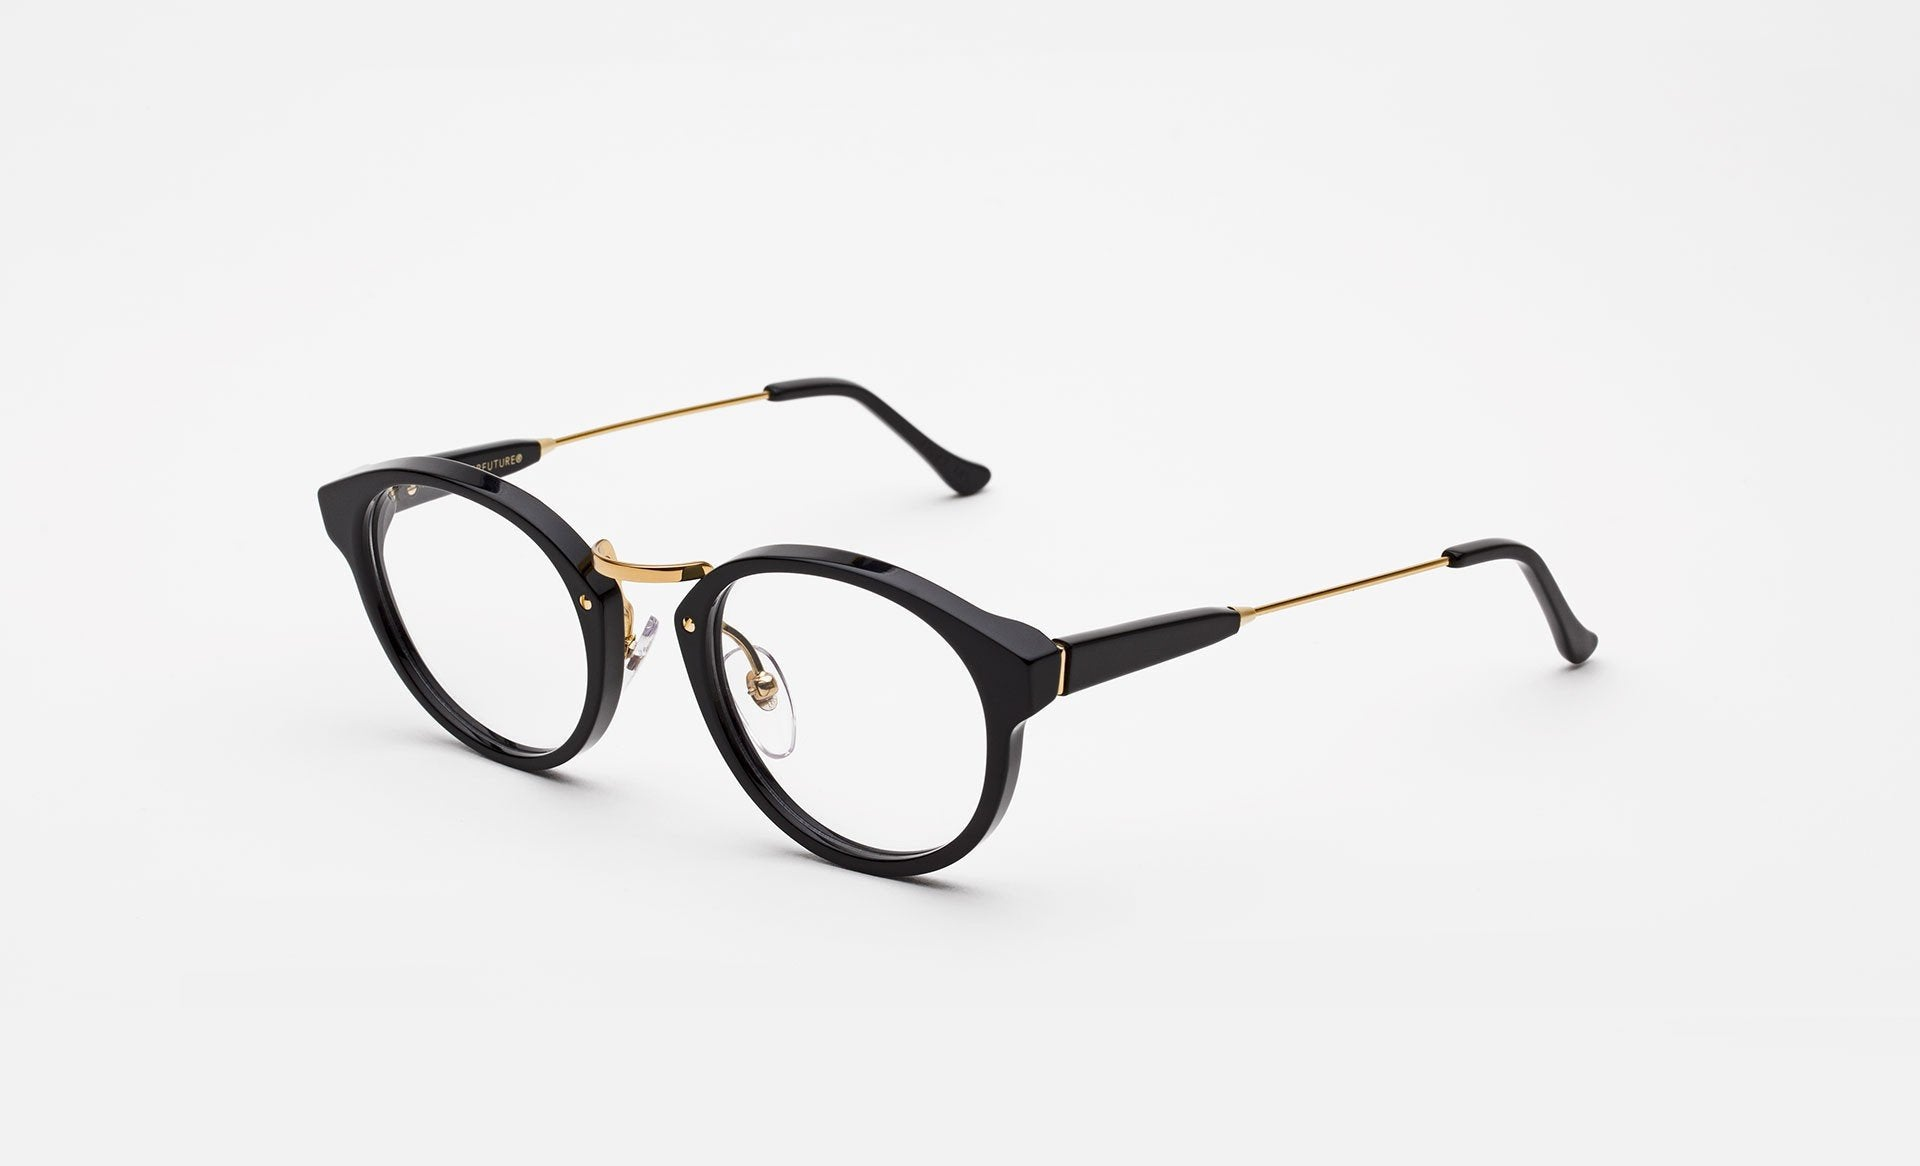 PANAMA OPTICAL BLACK LARGE